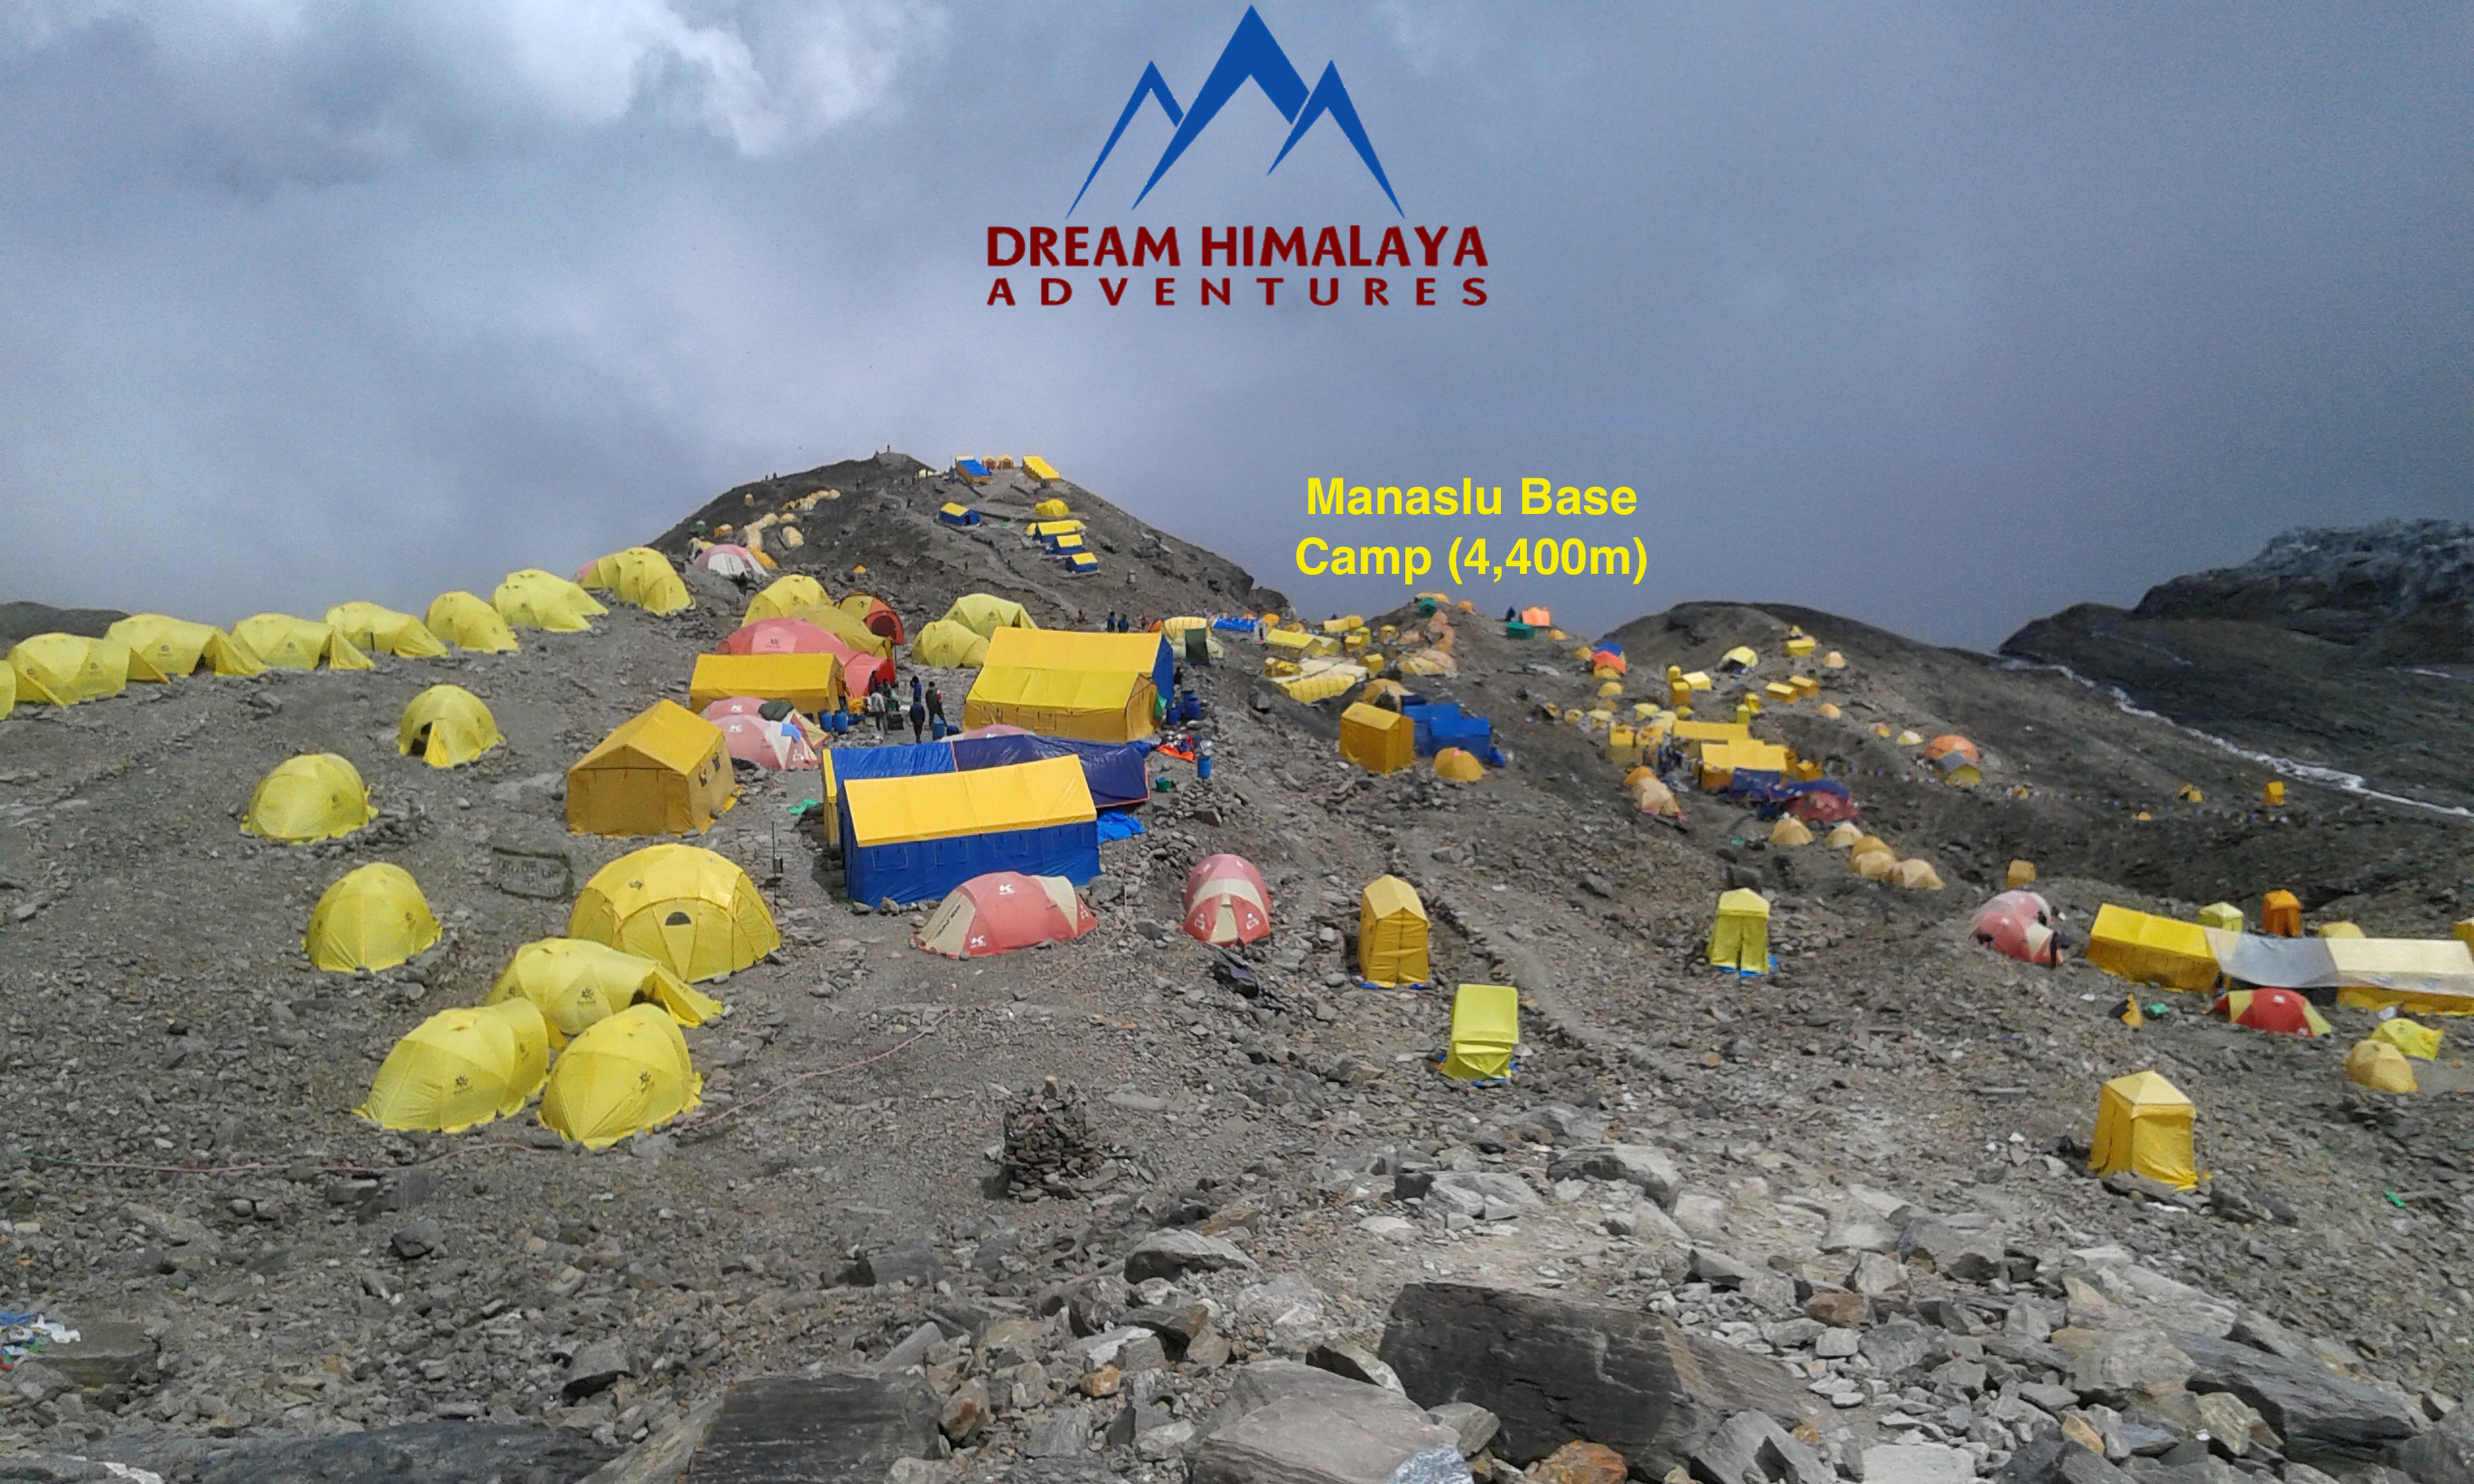 Mt Manaslu base camp (4400m)